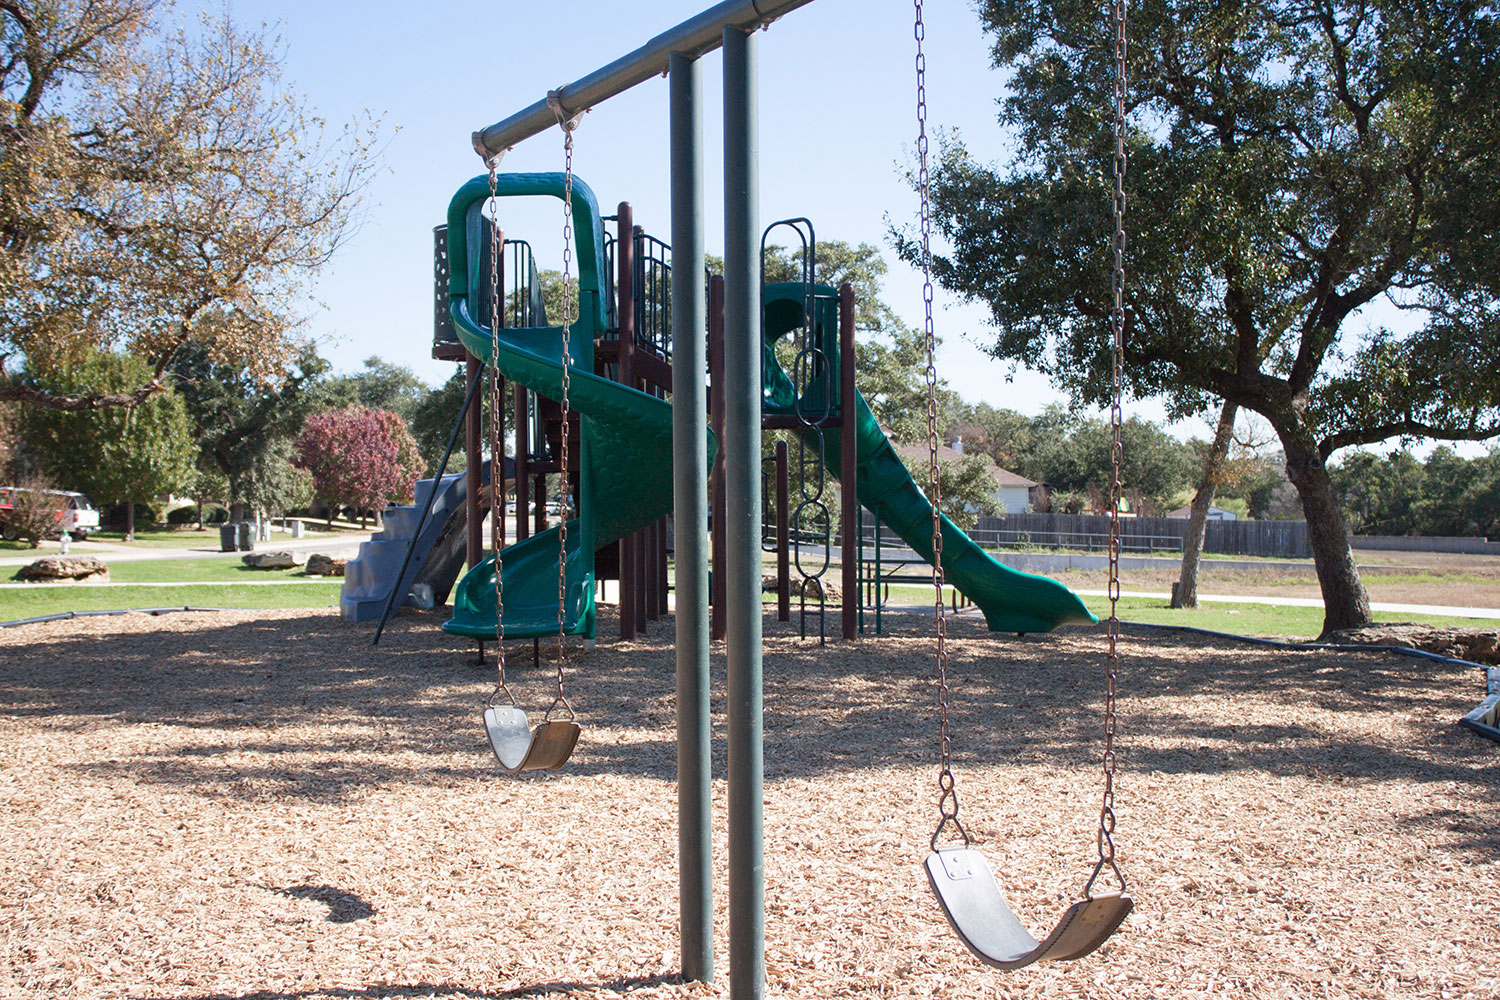 Swingset and playscape at Woodlake Park in Georgetown, TX